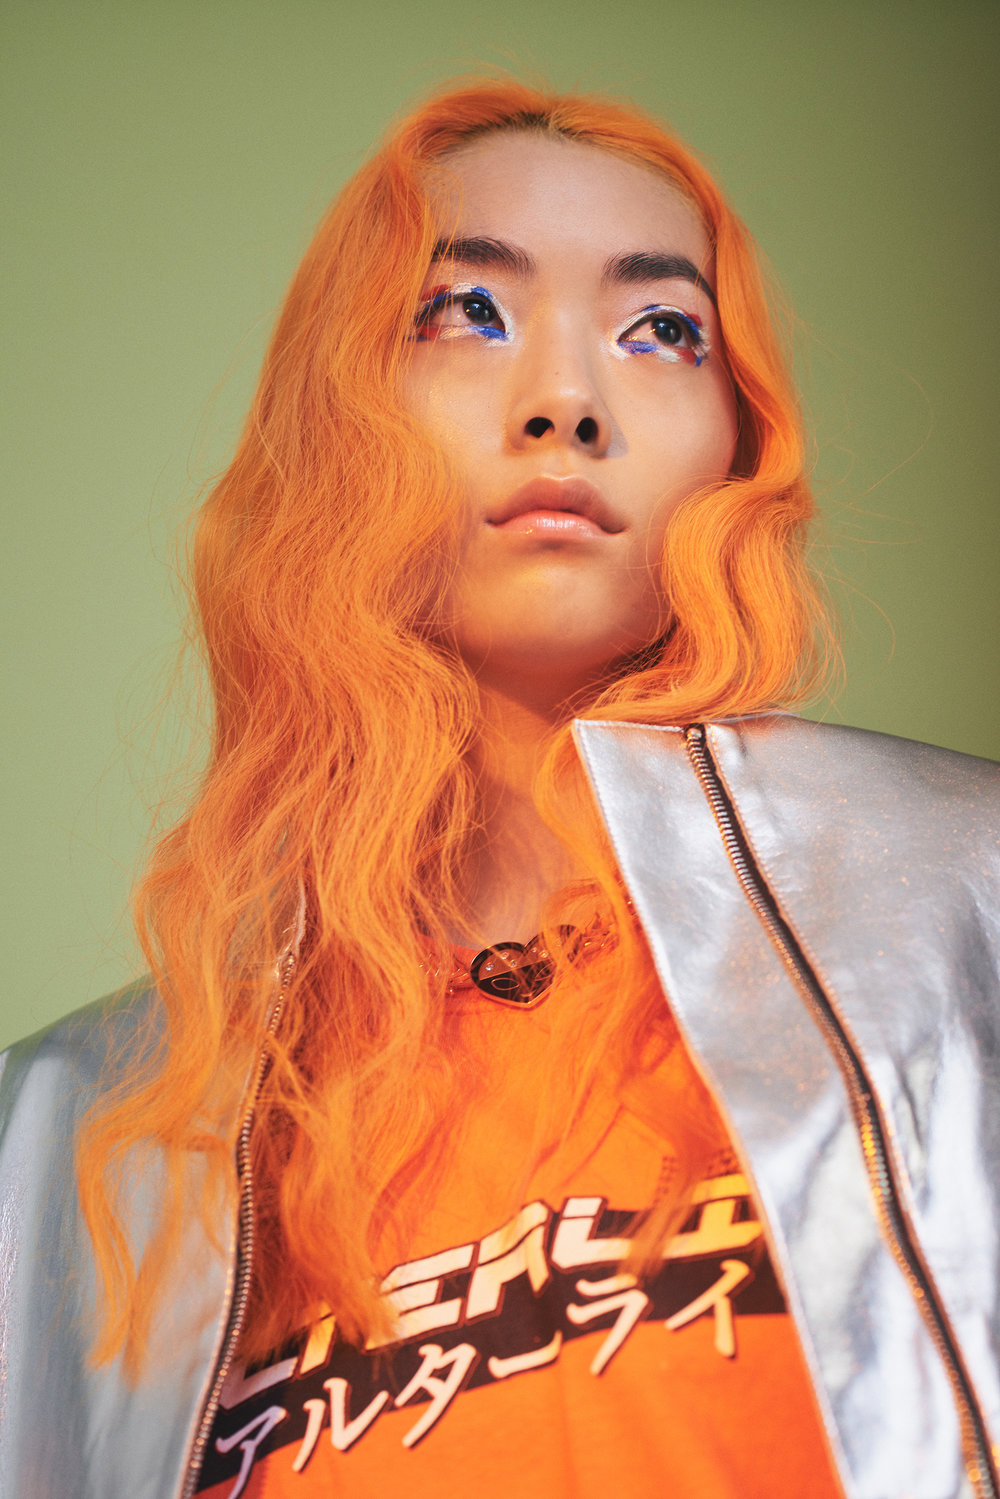 "Rina Sawayama - Rina Sawayama released her debut ""mini"" album, RINA, in 2017 and has taken the pop industry by storm ever since. In 2018, she produced her jaw-dropping singles, ""Cherry"", ""Valentine (What's it Gonna Be)"" and ""Flicker."" It's nearly impossible to listen to Sawayama's music without moving your hips along to the infectious synth-pop beats and sensational lyrics. Pop fans all over are waiting with bated breath to see what's next for her ever-growing discography.Where to start: ""Cyber Stockholm Syndrome"", ""Cherry"", ""Take Me As I Am"""